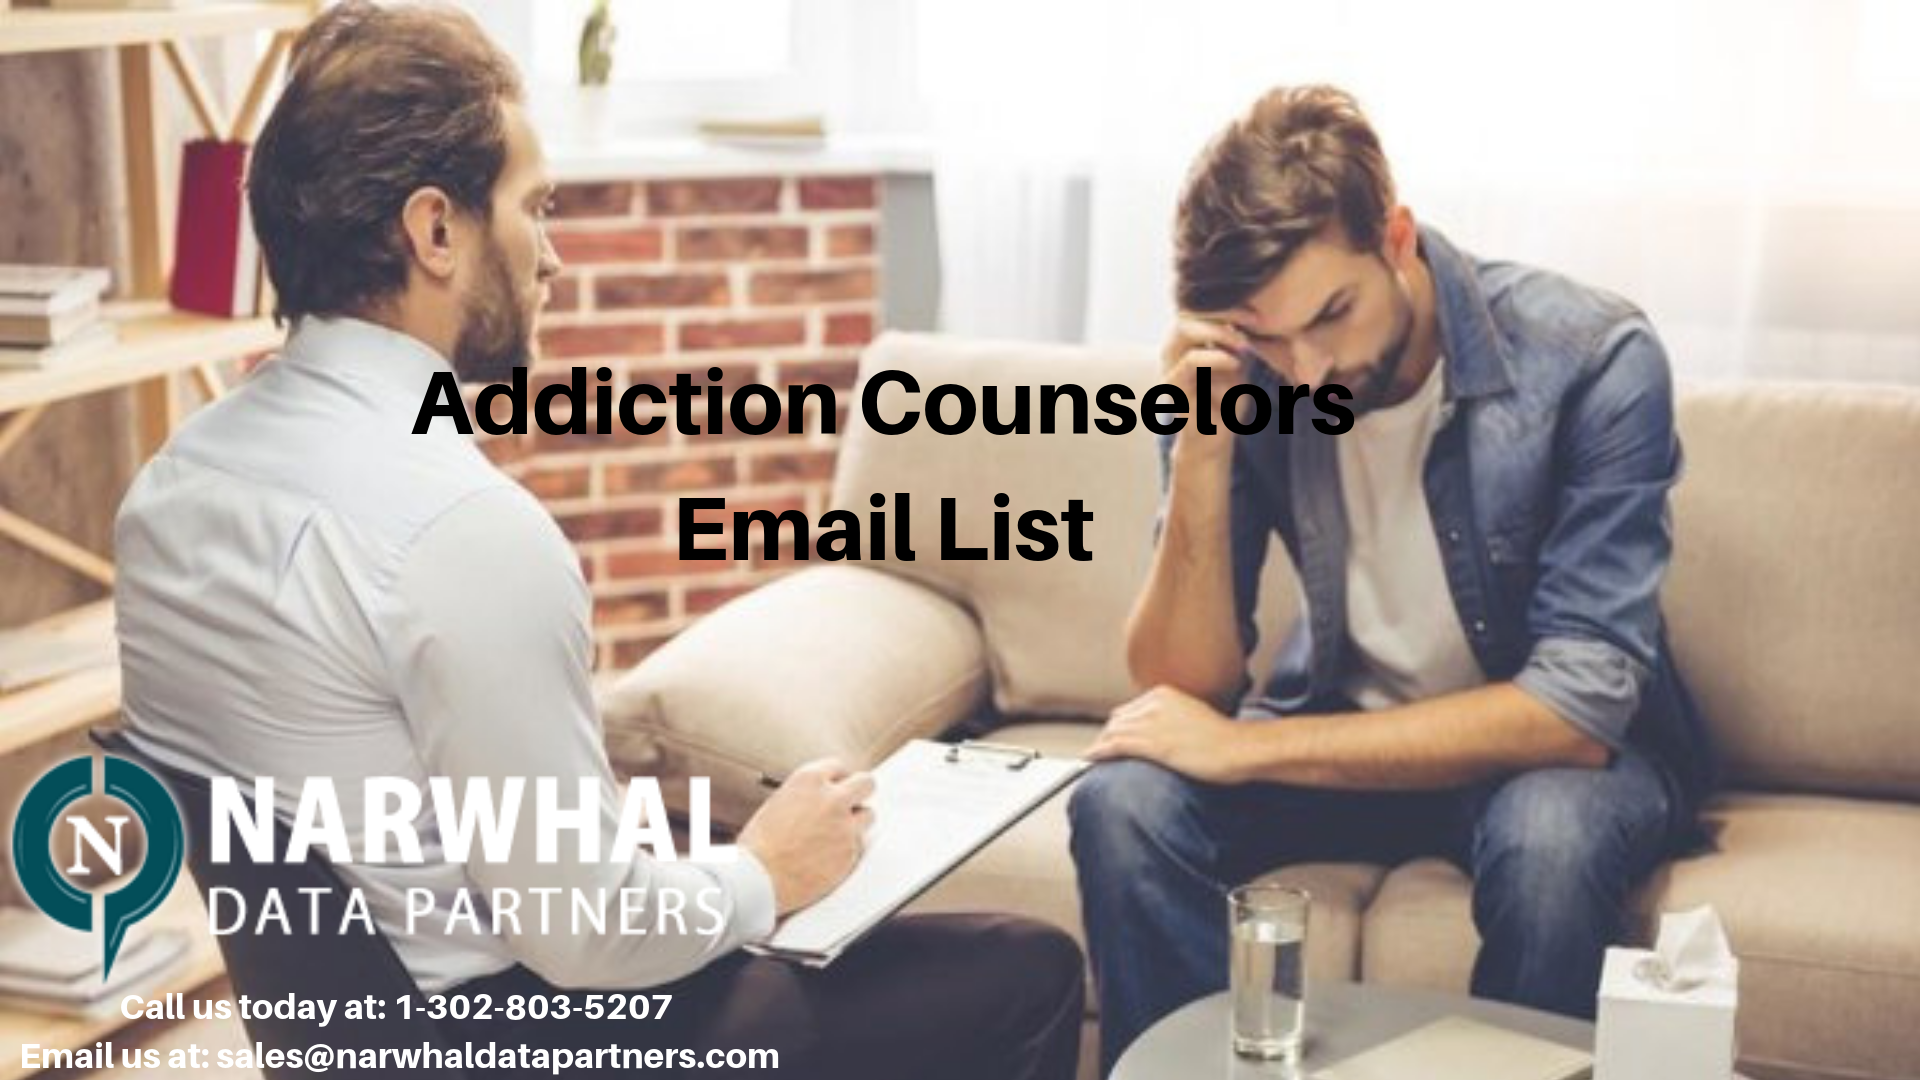 http://narwhaldatapartners.com/addiction-counselors-email-list.html